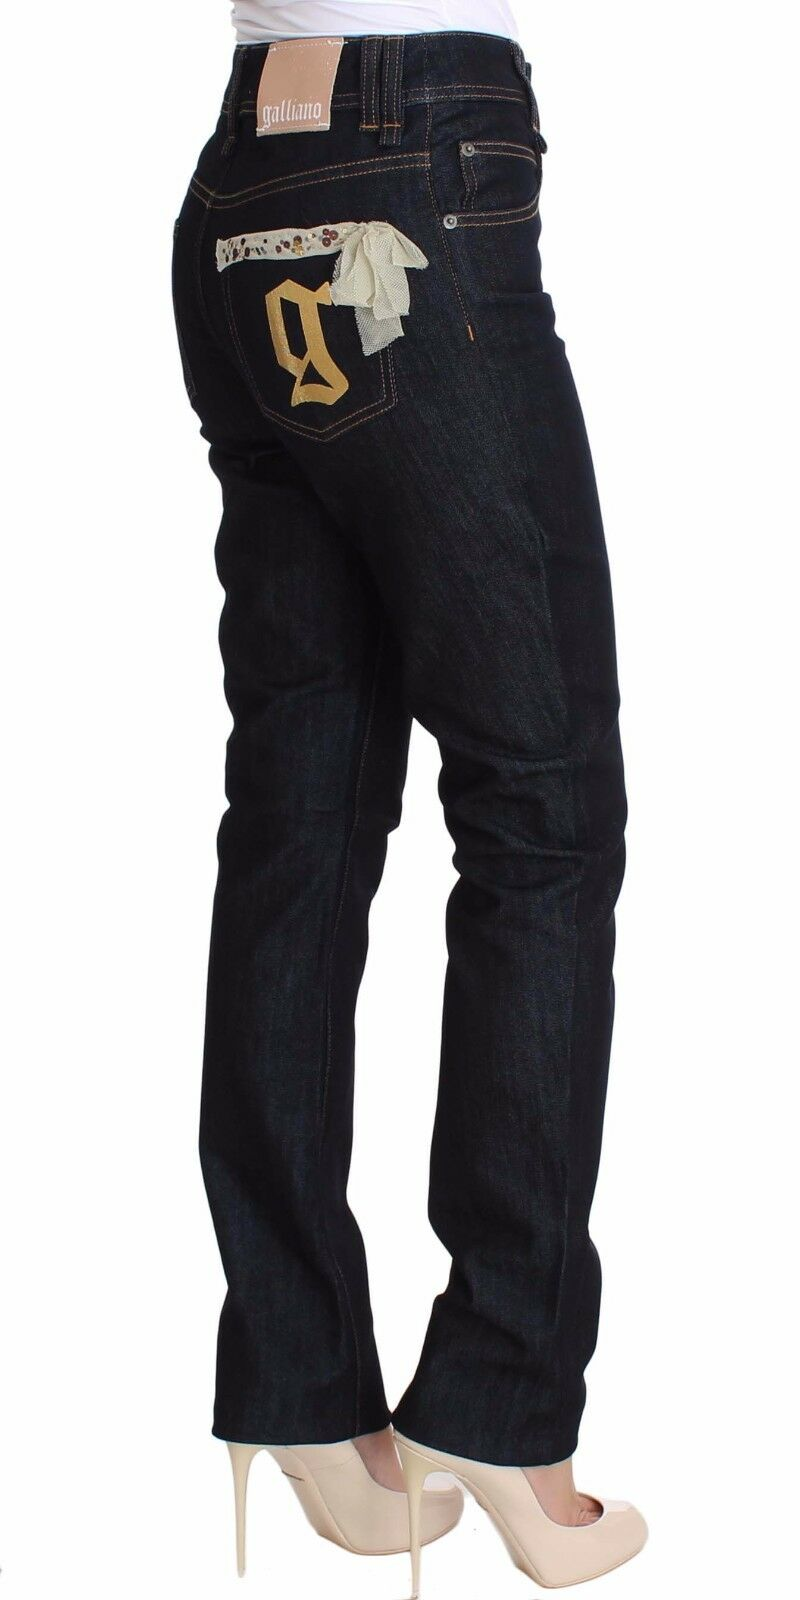 NWT JOHN GALLIANO Jeans bluee Regular Fit Sequined Cotton Denim W26   IT40